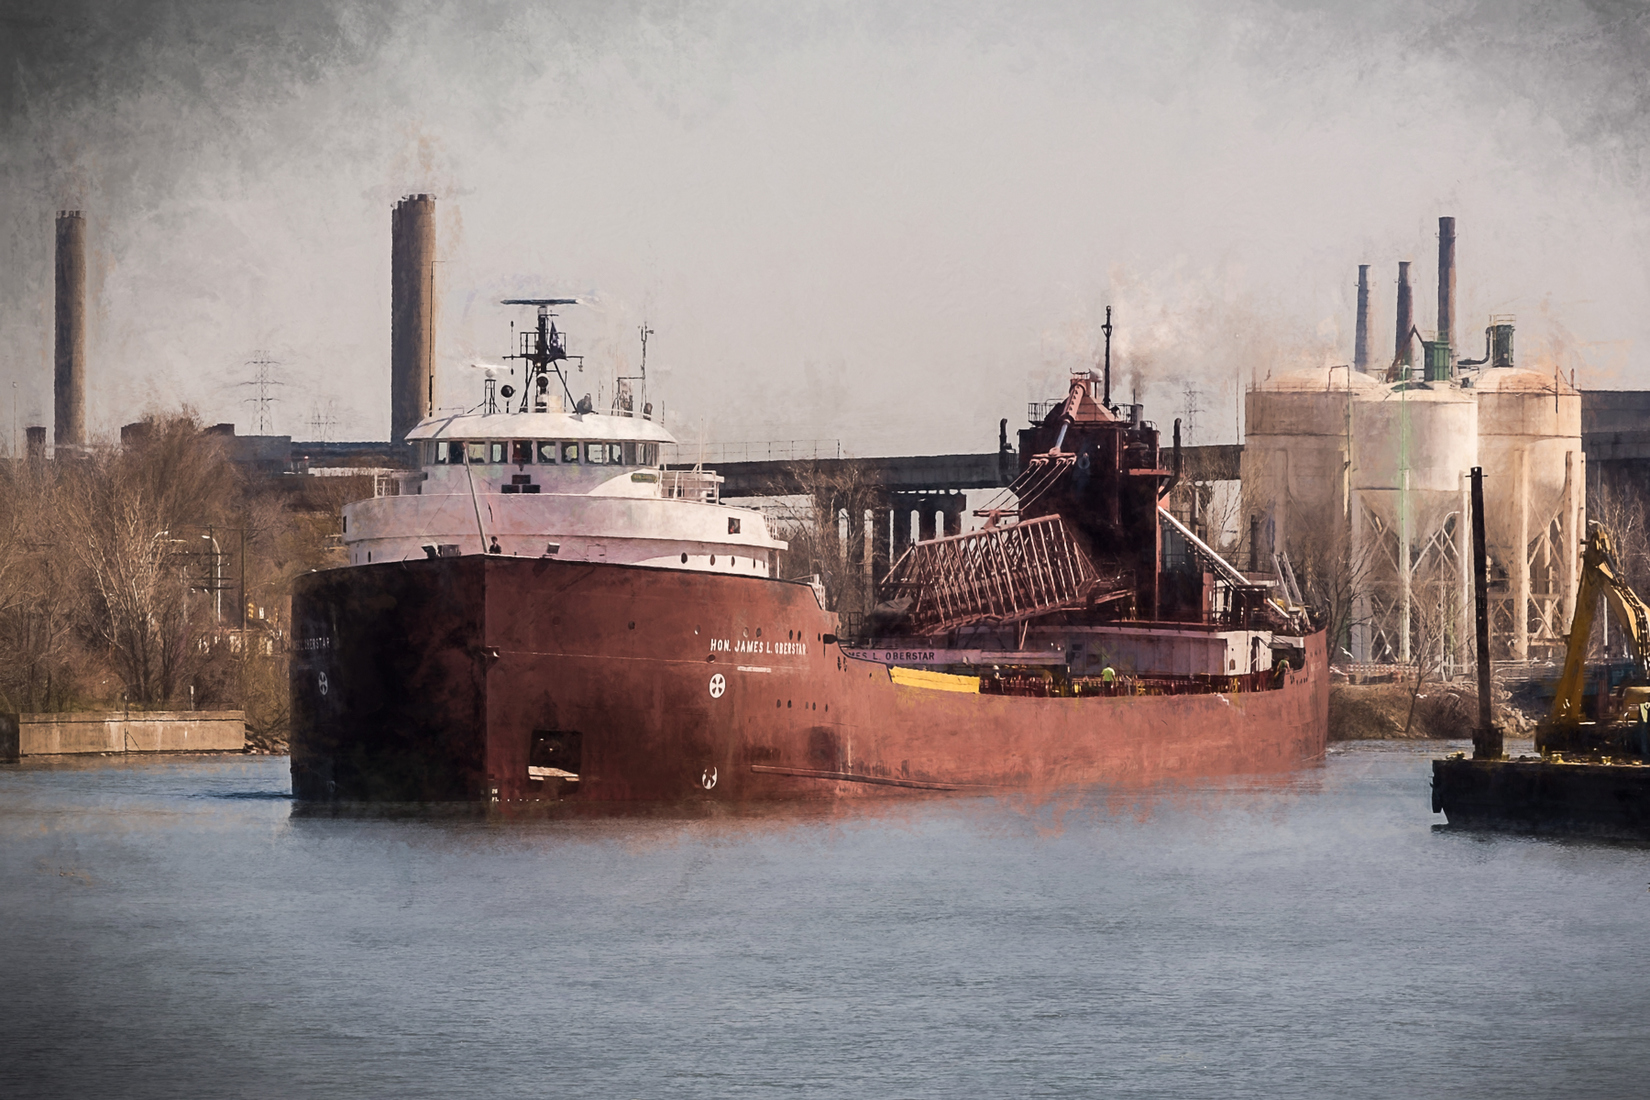 Detroit River Hon. James L. Oberstar at Dix Bridge